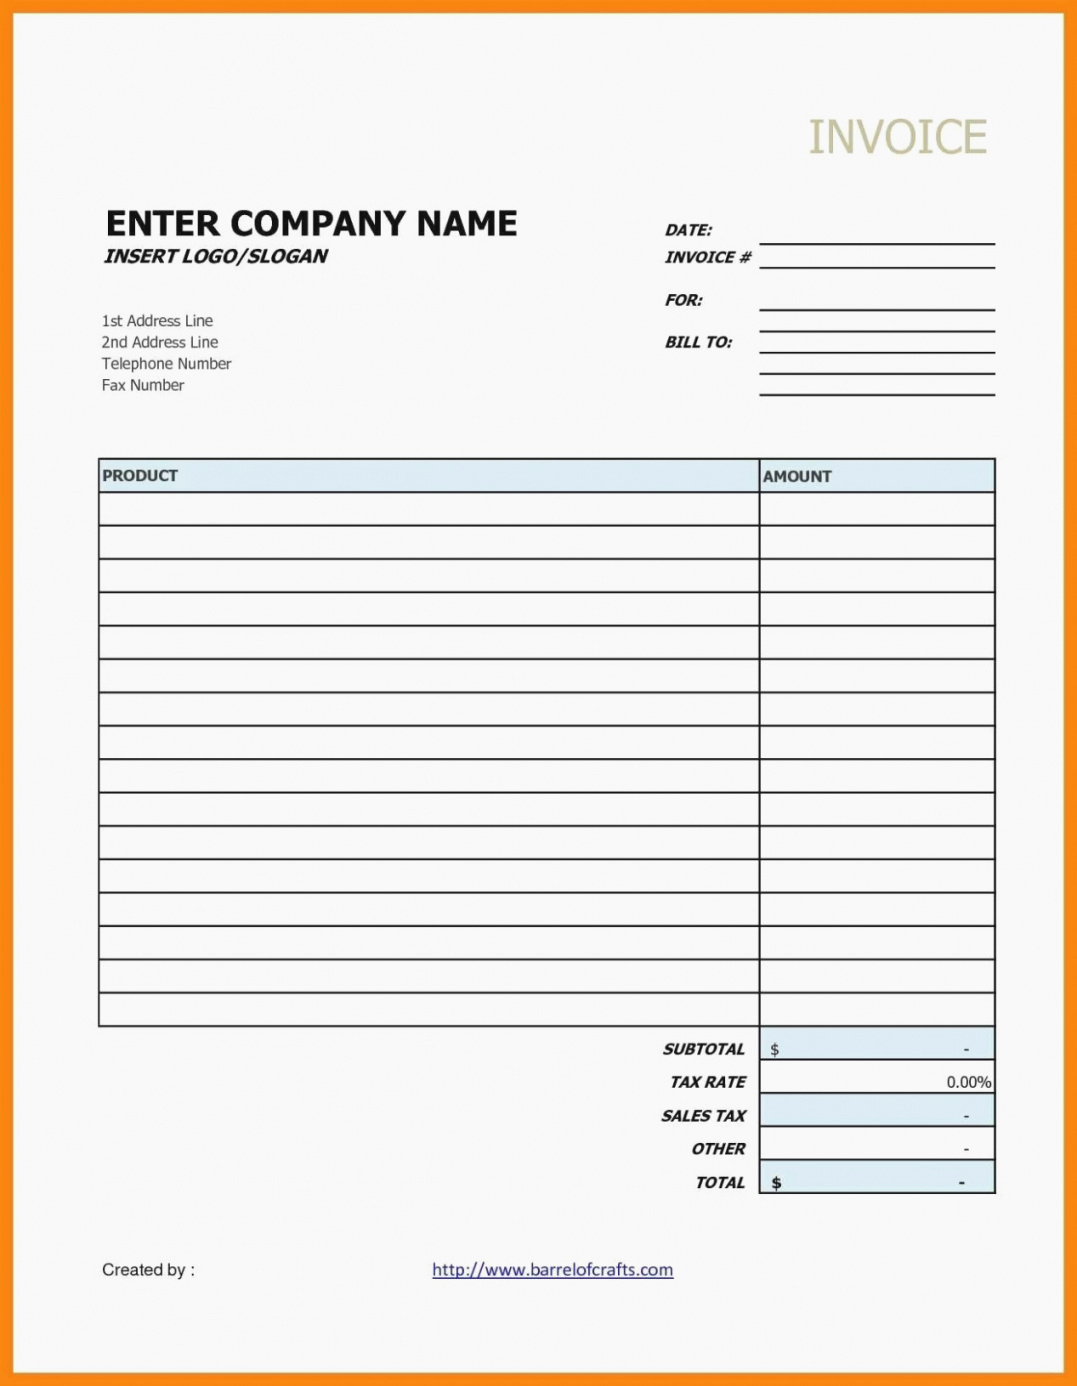 Simple Invoice Template Google Docs Awesome Contractor Invoice Template Google Docs